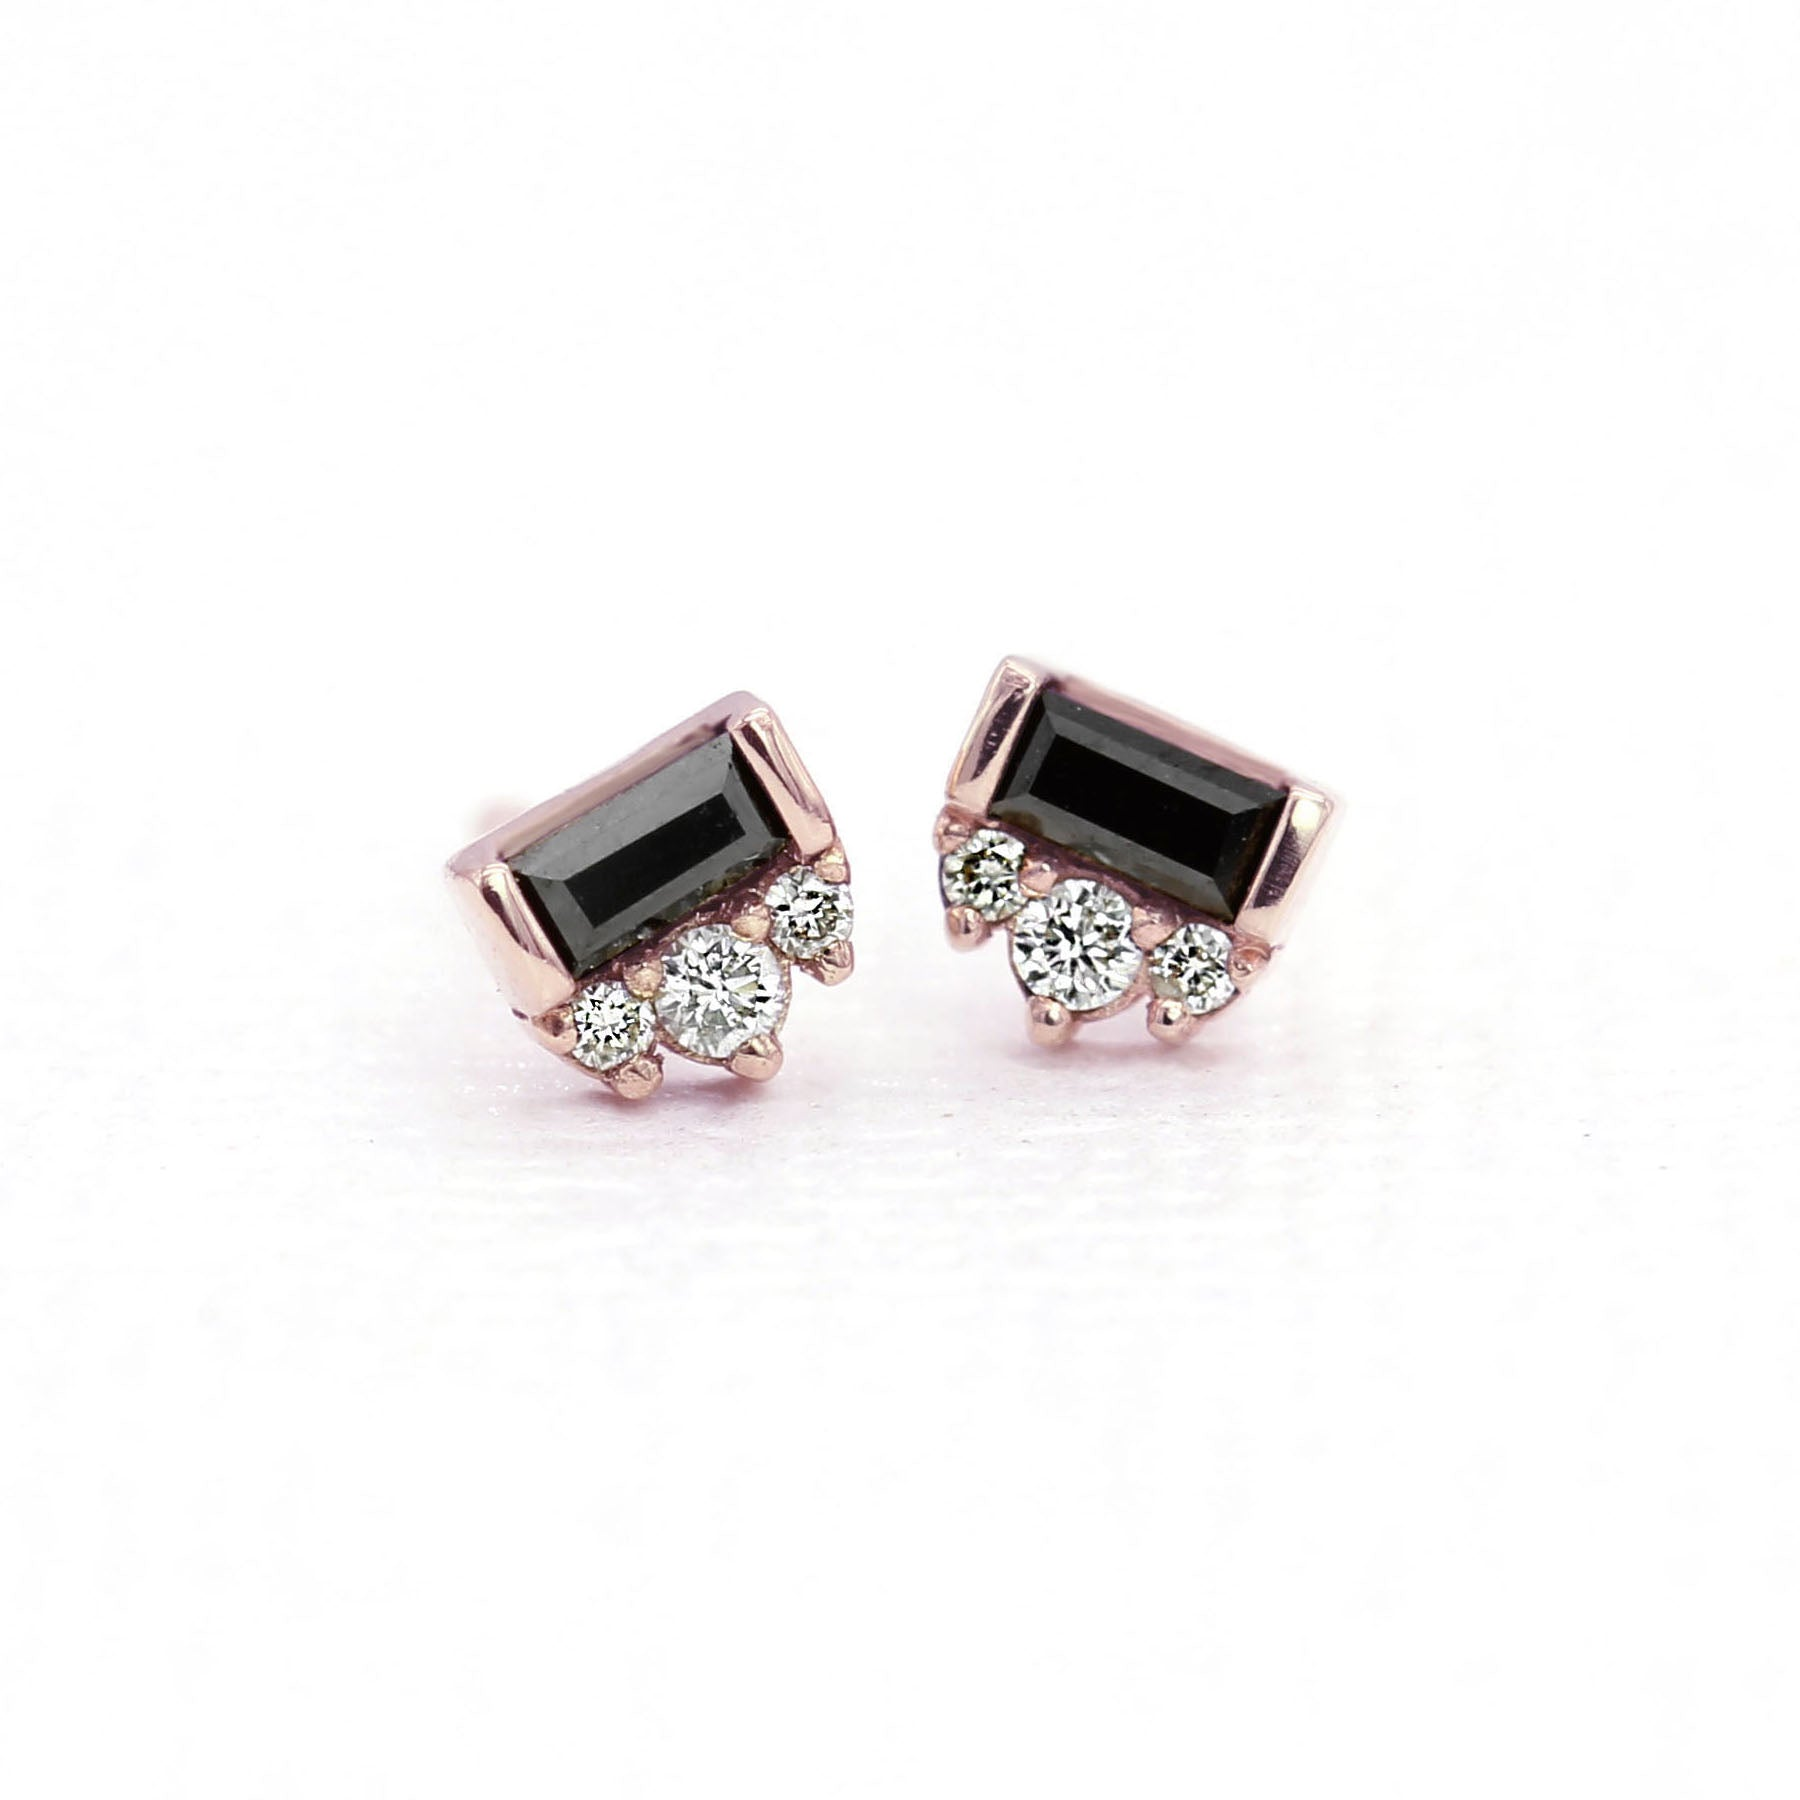 Black Tie Earrings - Baguette Black Diamond & White Diamonds - Rose Gold